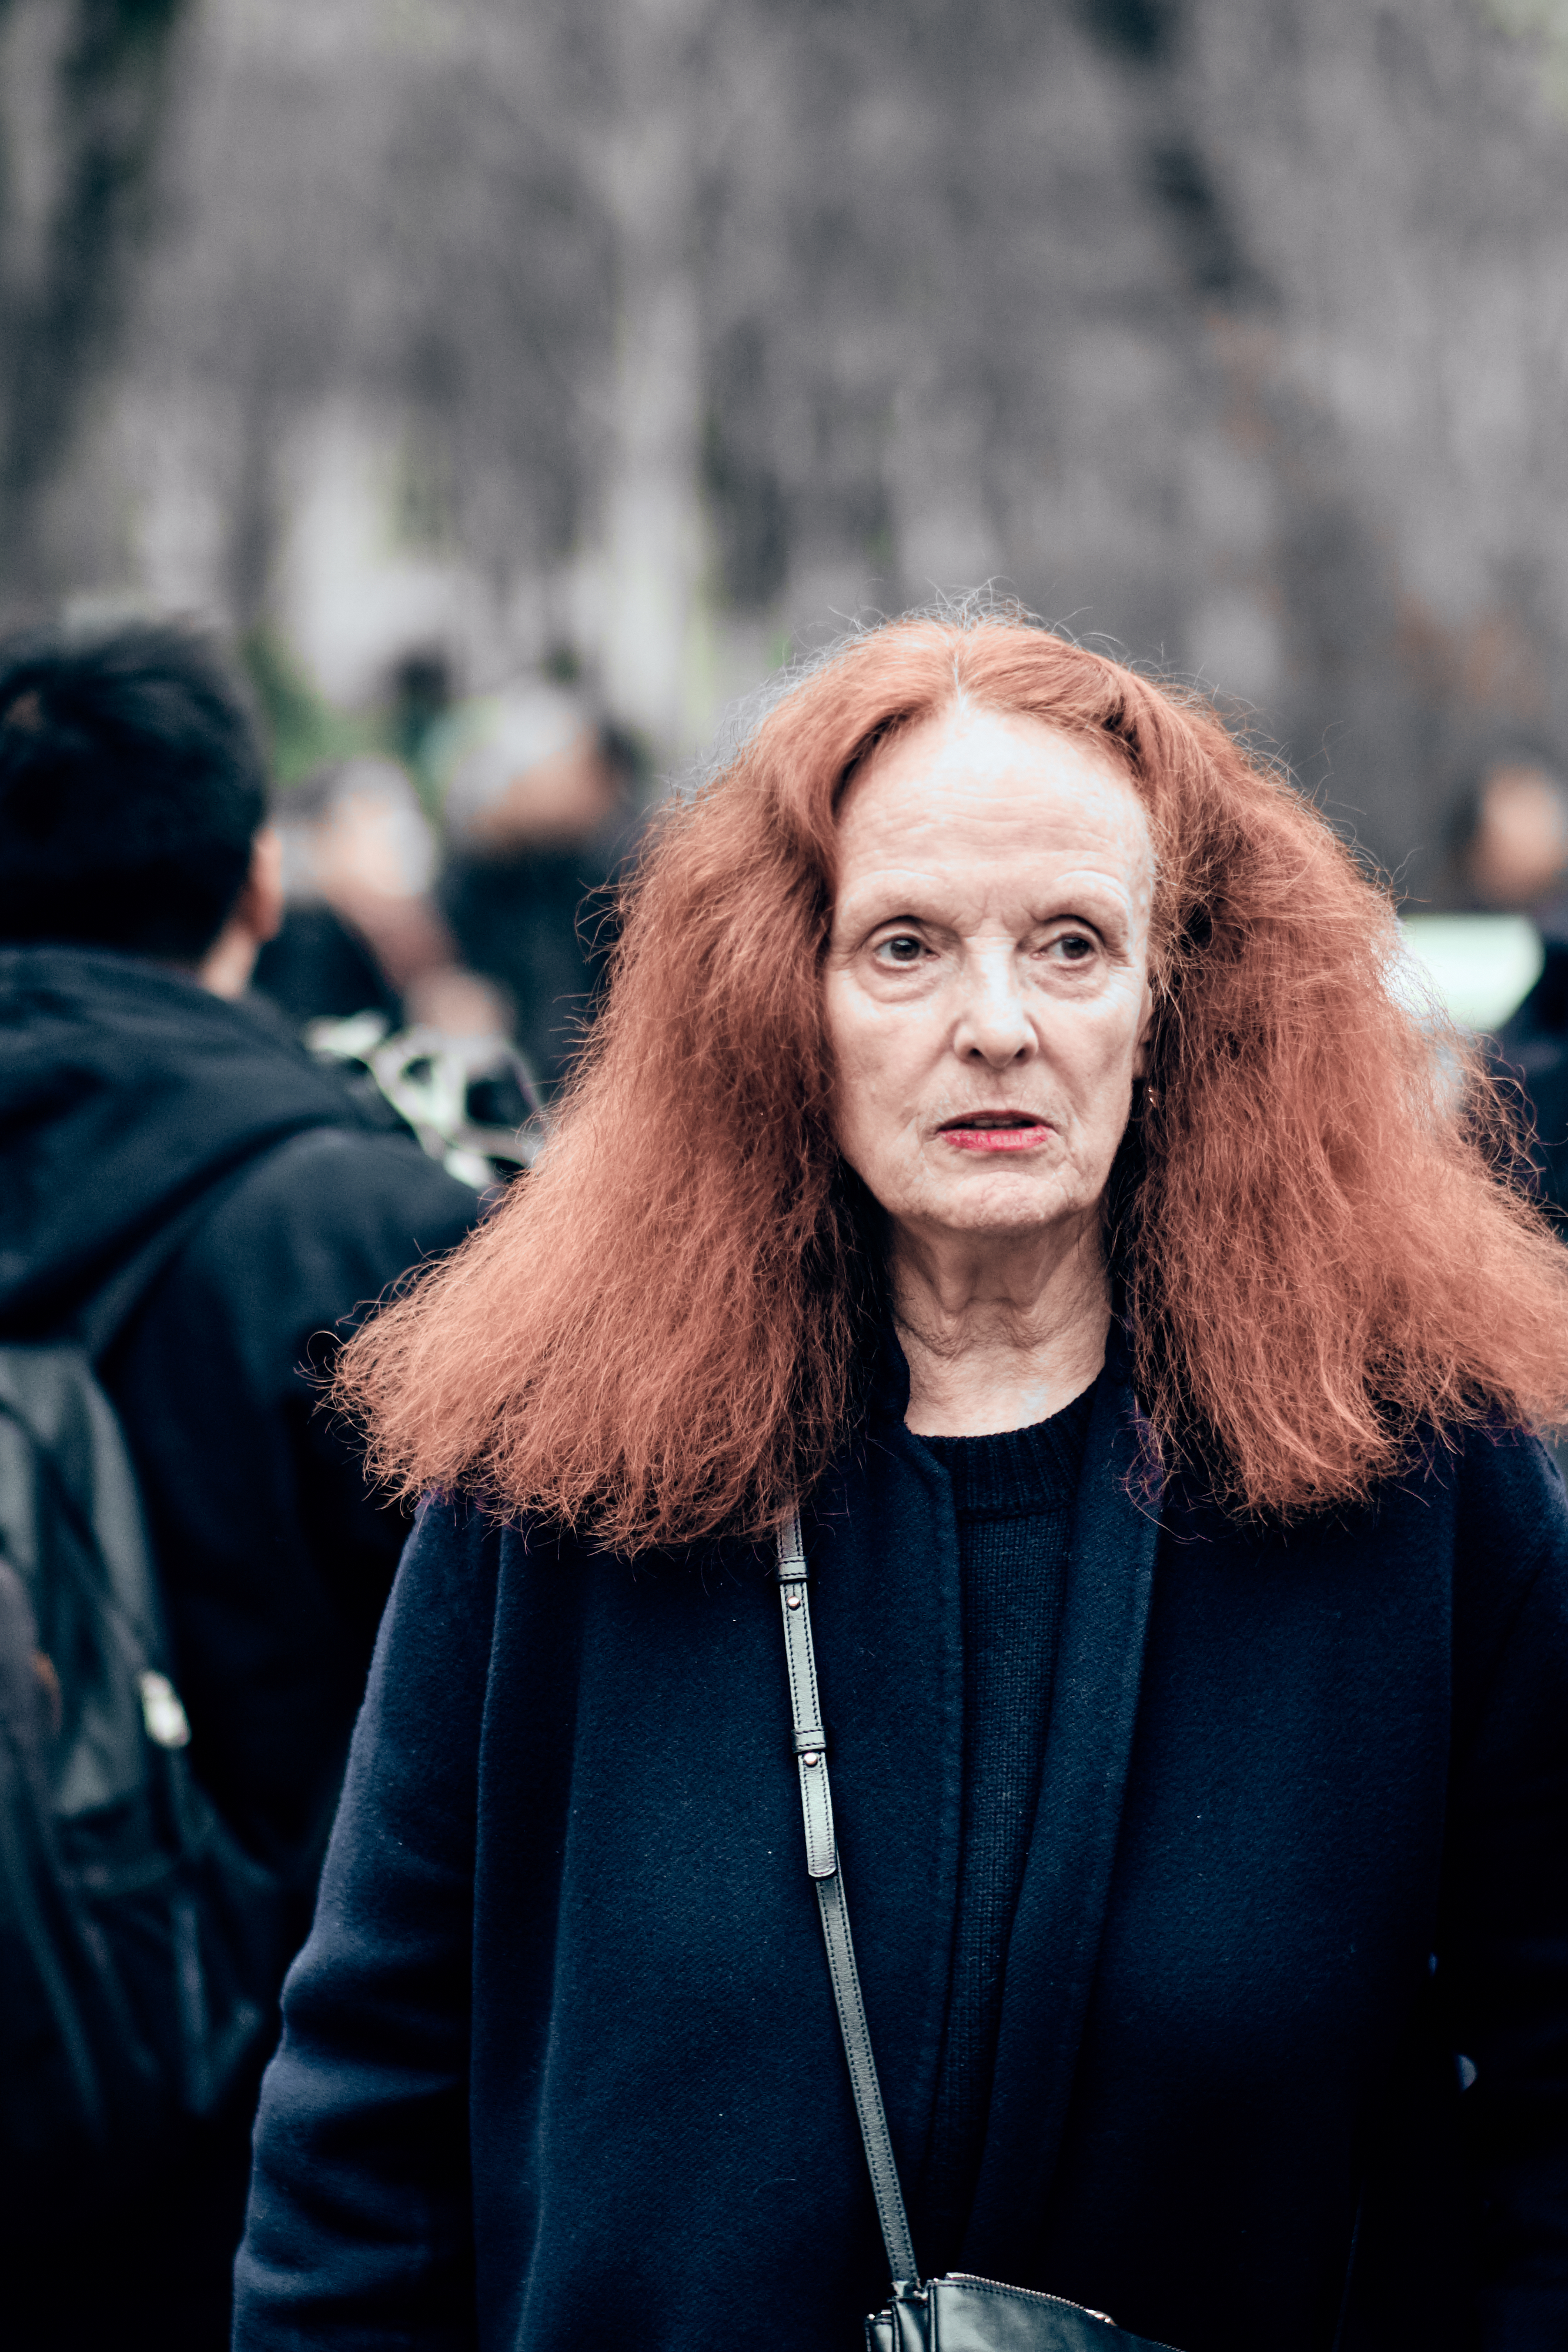 The 79-year old daughter of father (?) and mother(?) Grace Coddington in 2020 photo. Grace Coddington earned a million dollar salary - leaving the net worth at 50 million in 2020